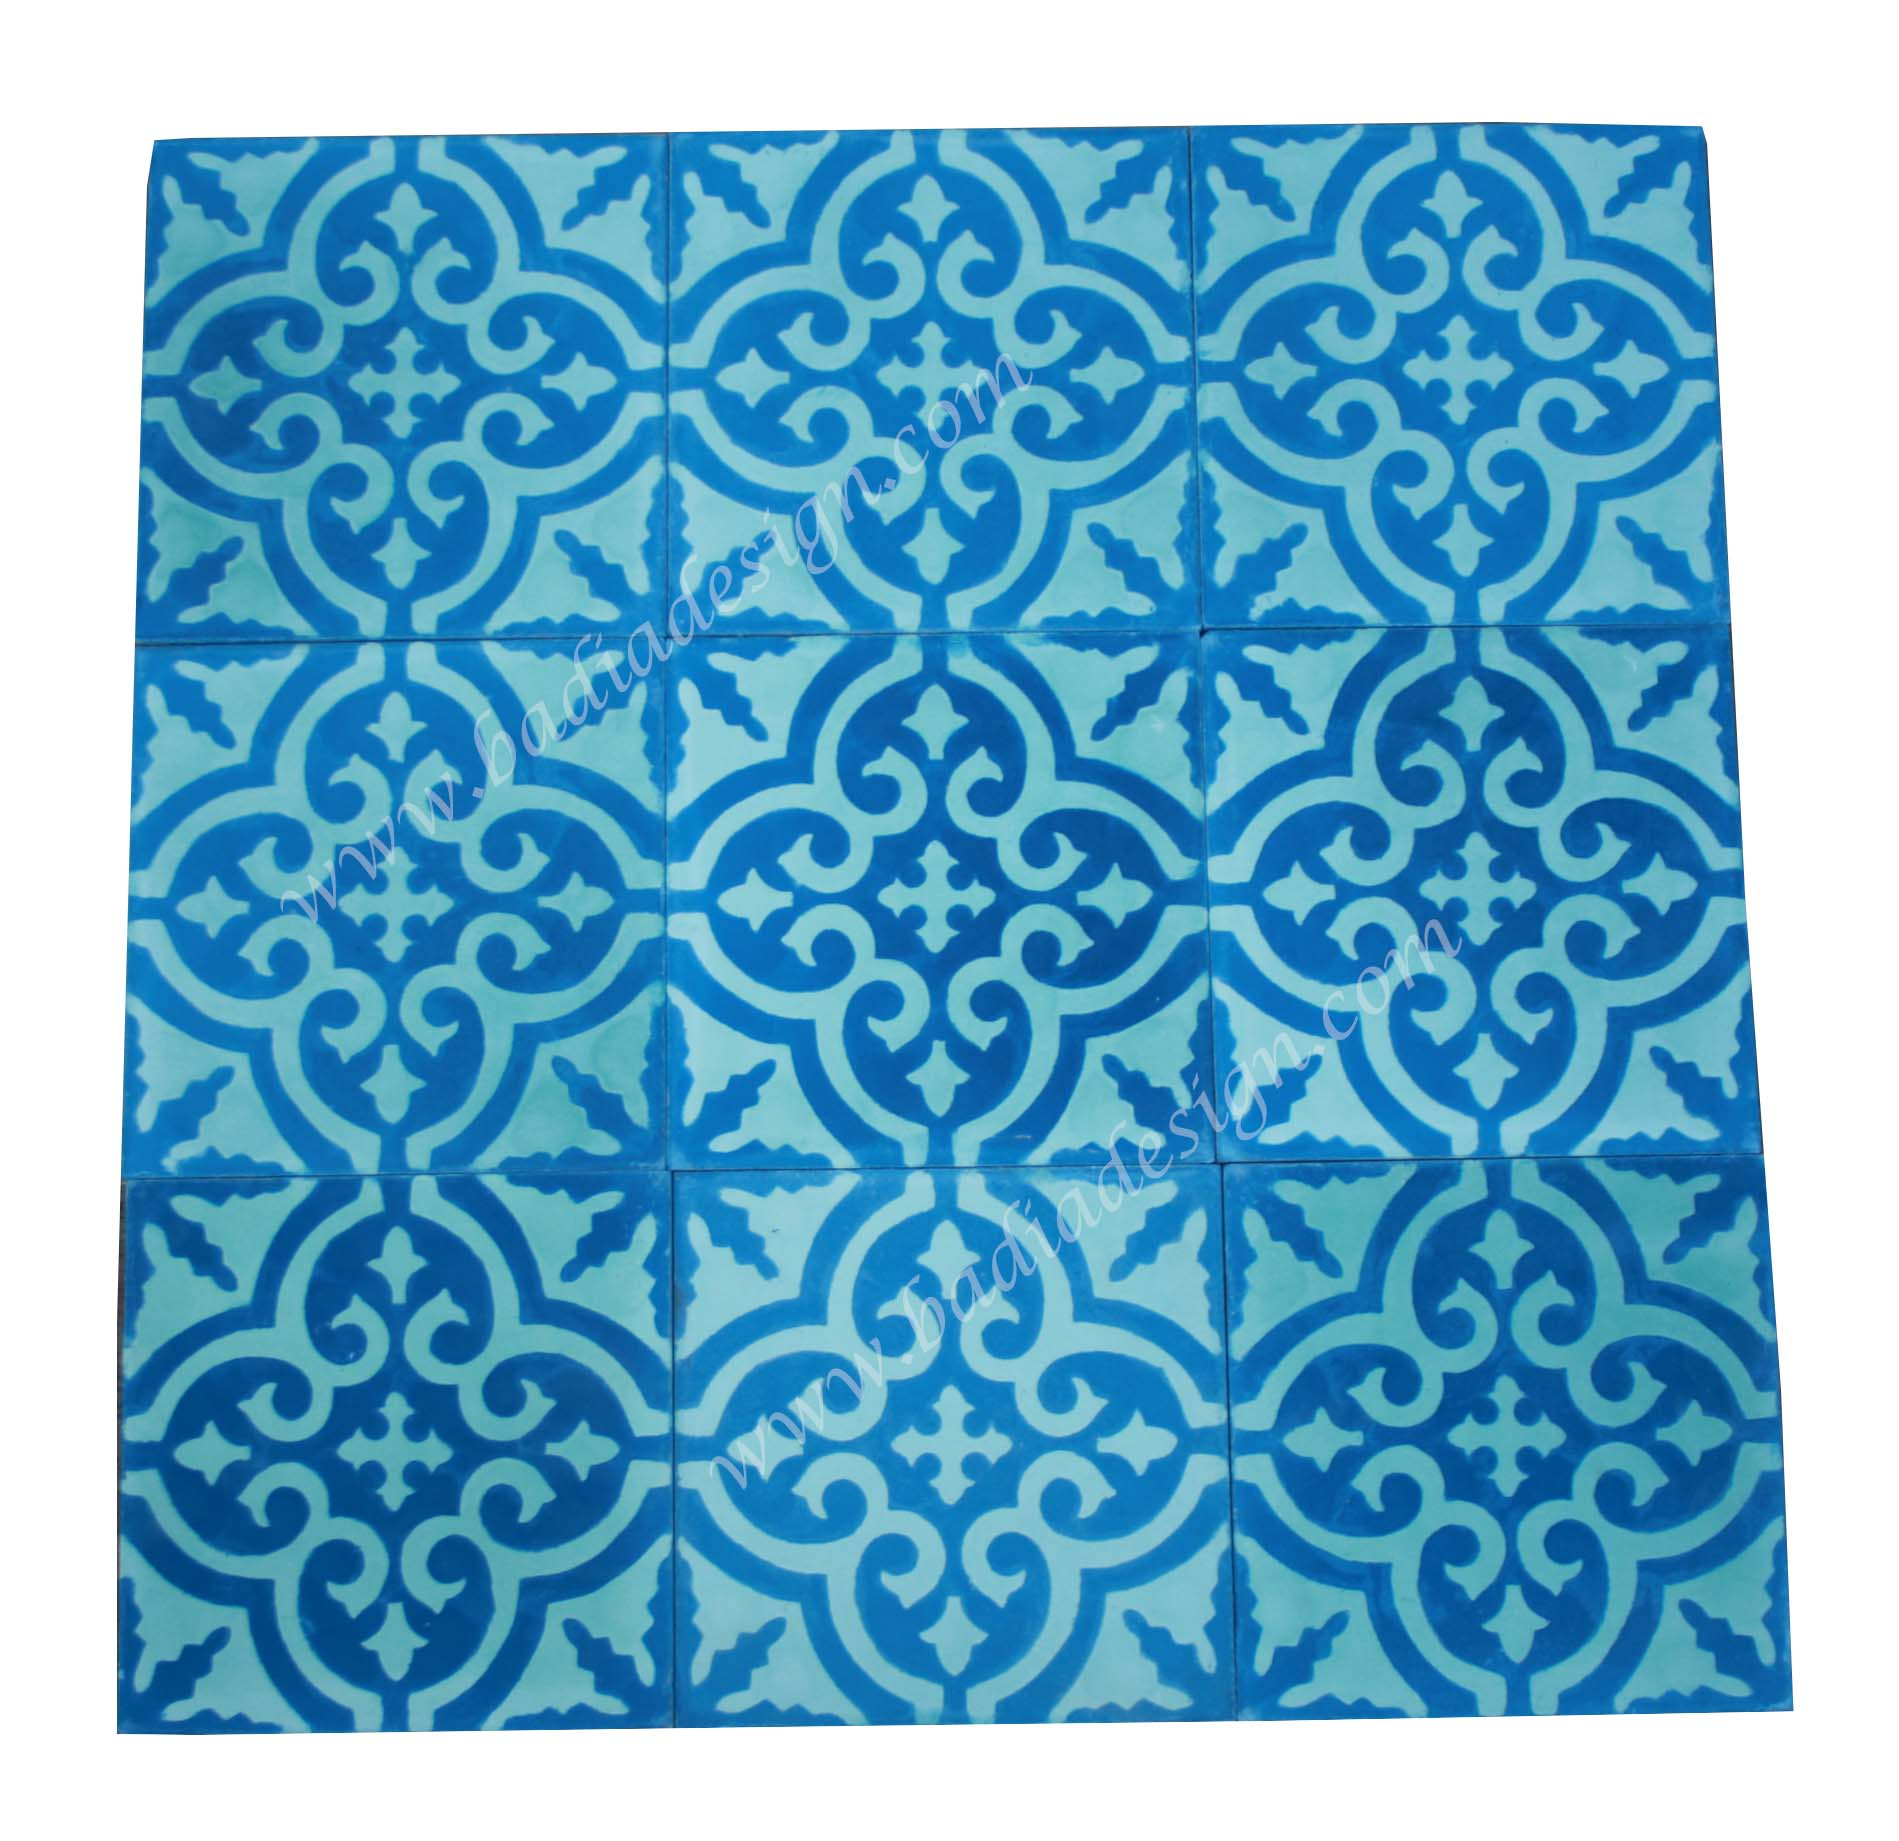 where-to-buy-moroccan-cement-tiles-ct089-1.jpg